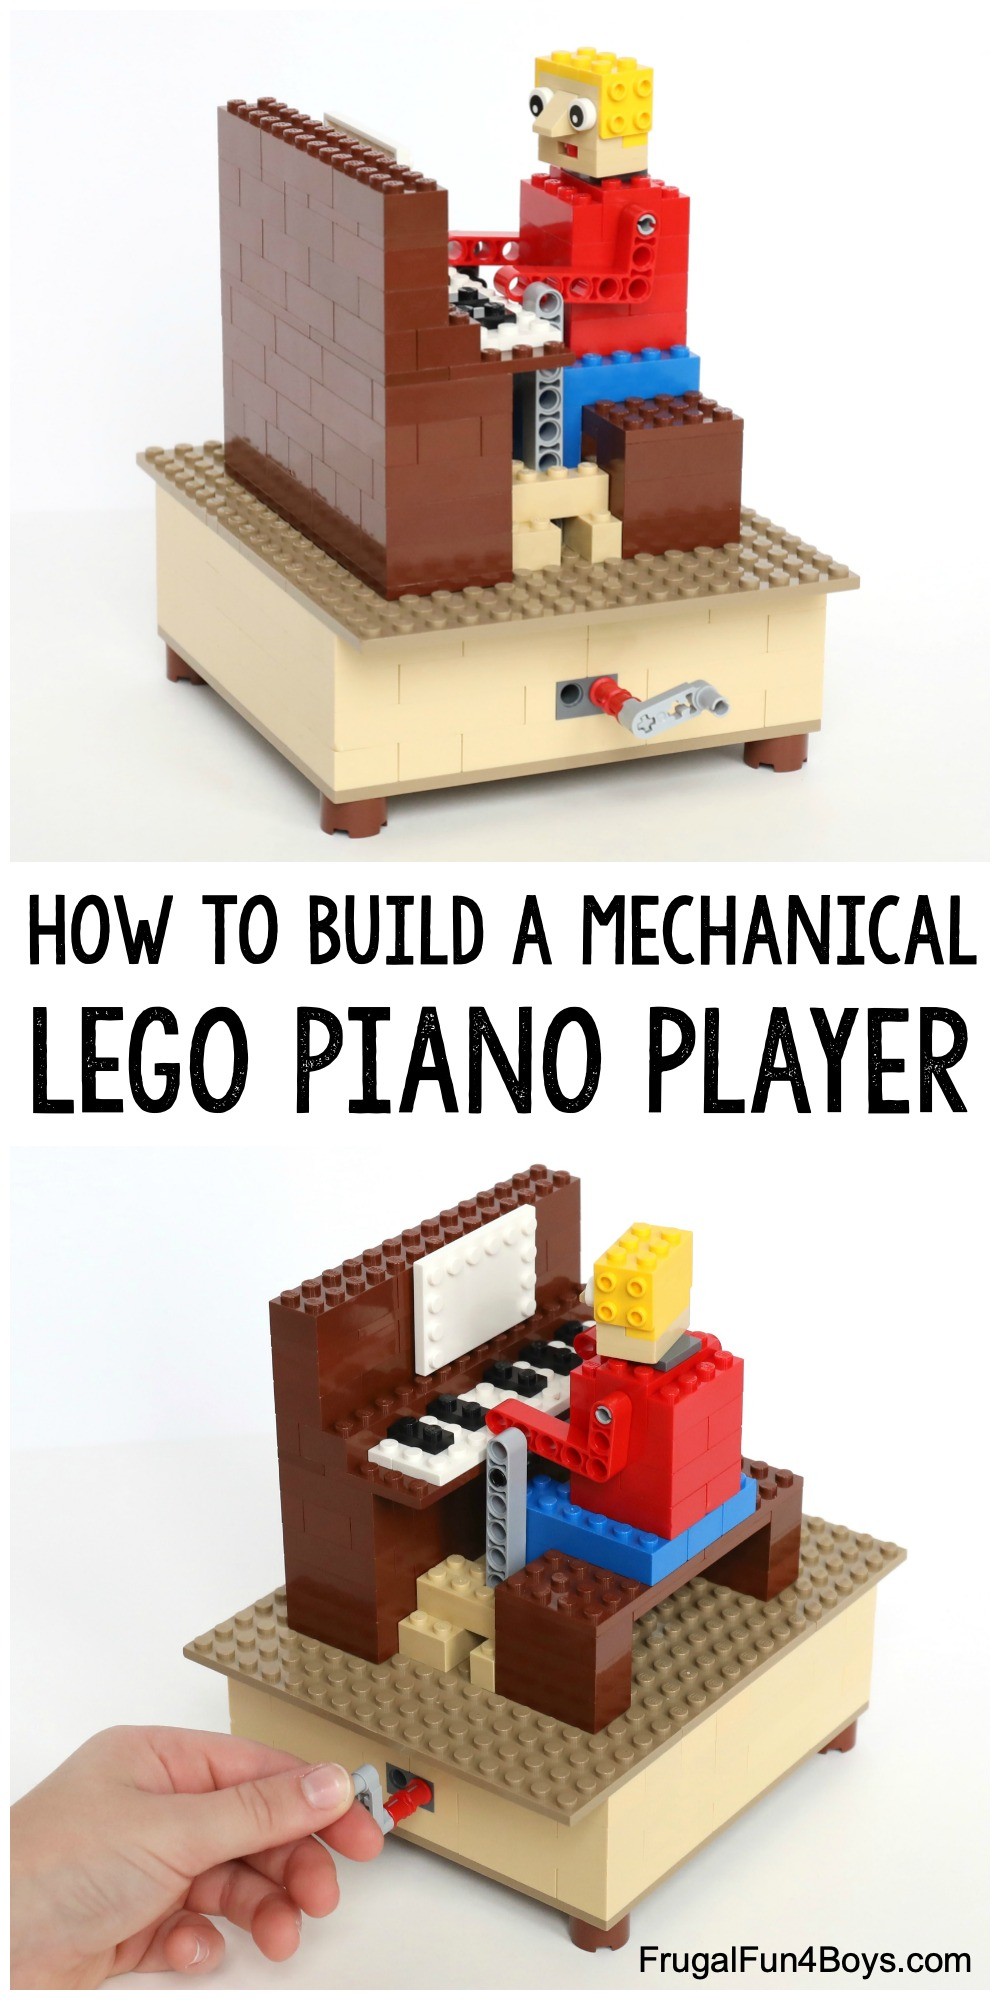 How to build a Mechanical LEGO Piano Player